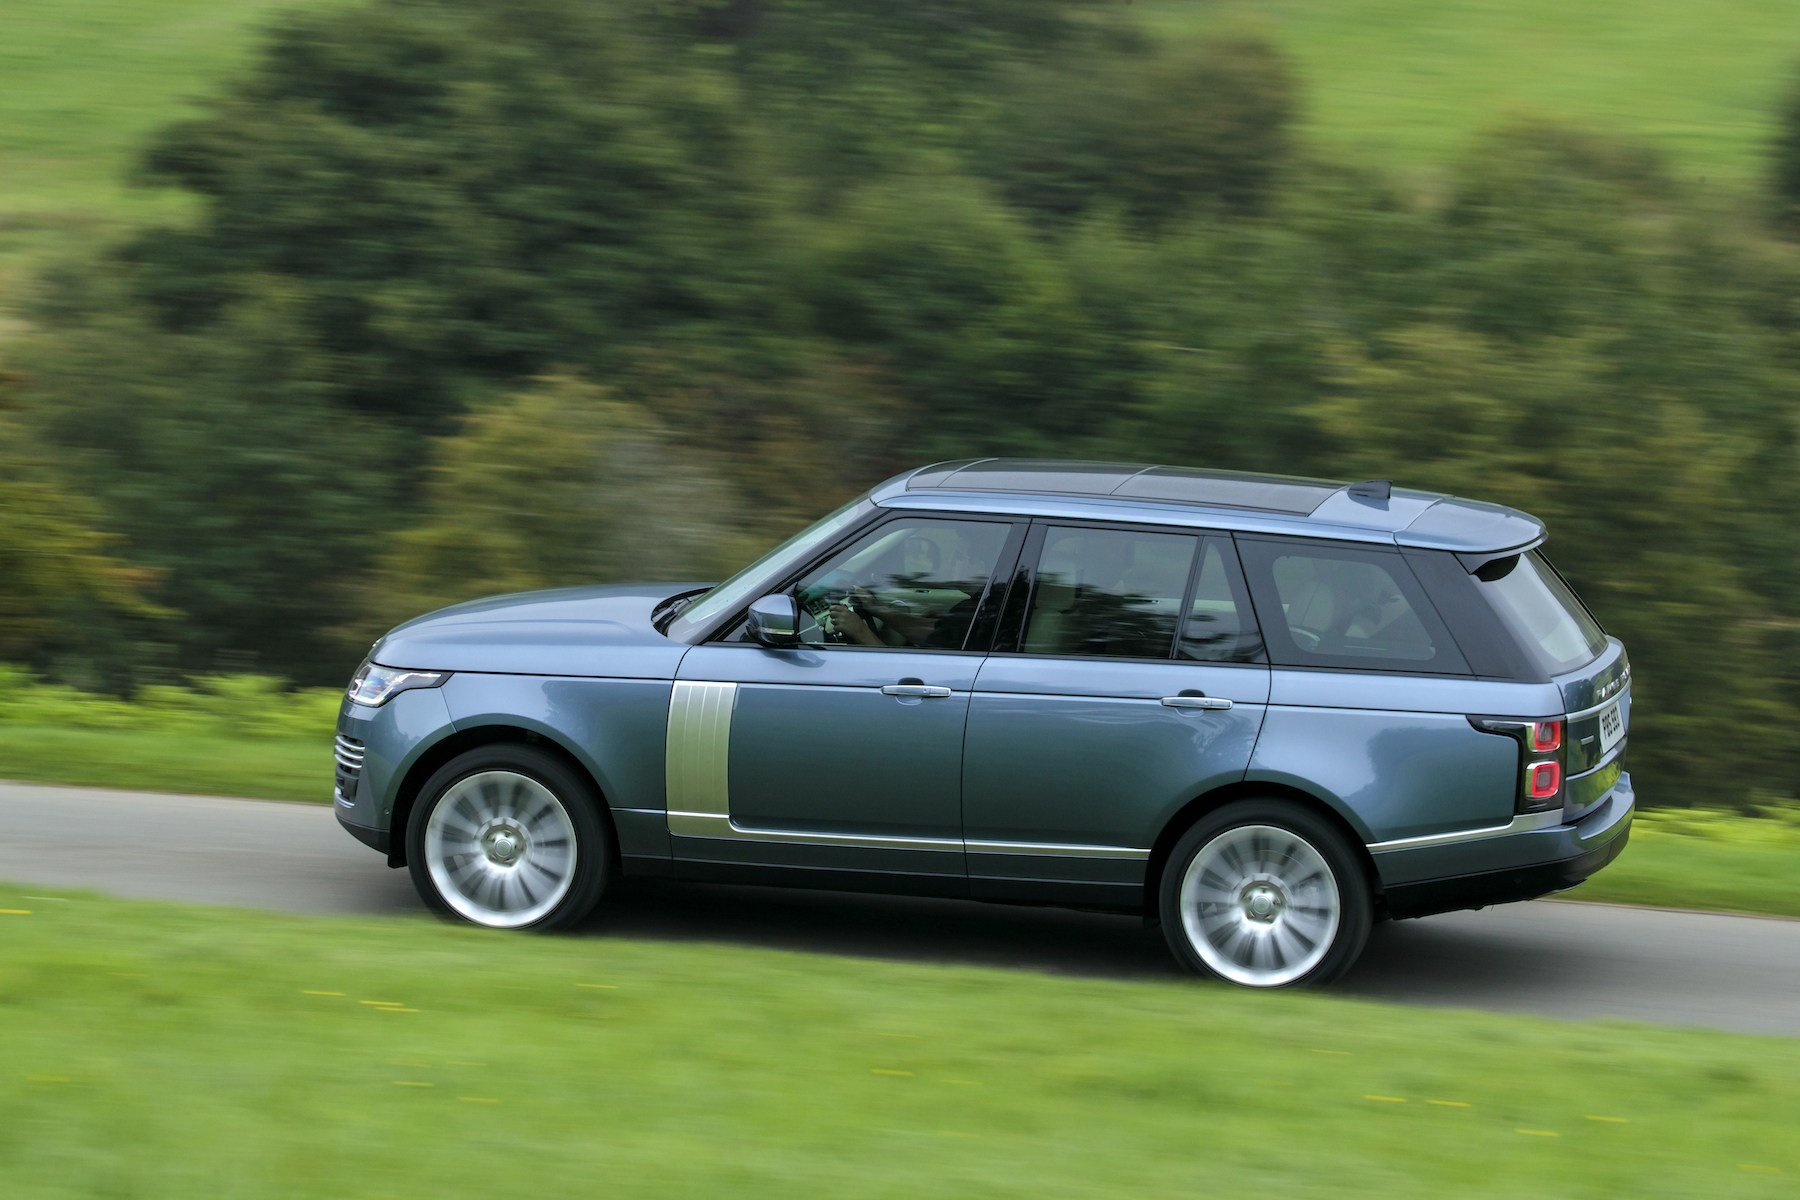 Latest The New Range Rover Silent Luxury Cars Life Blog Free Download